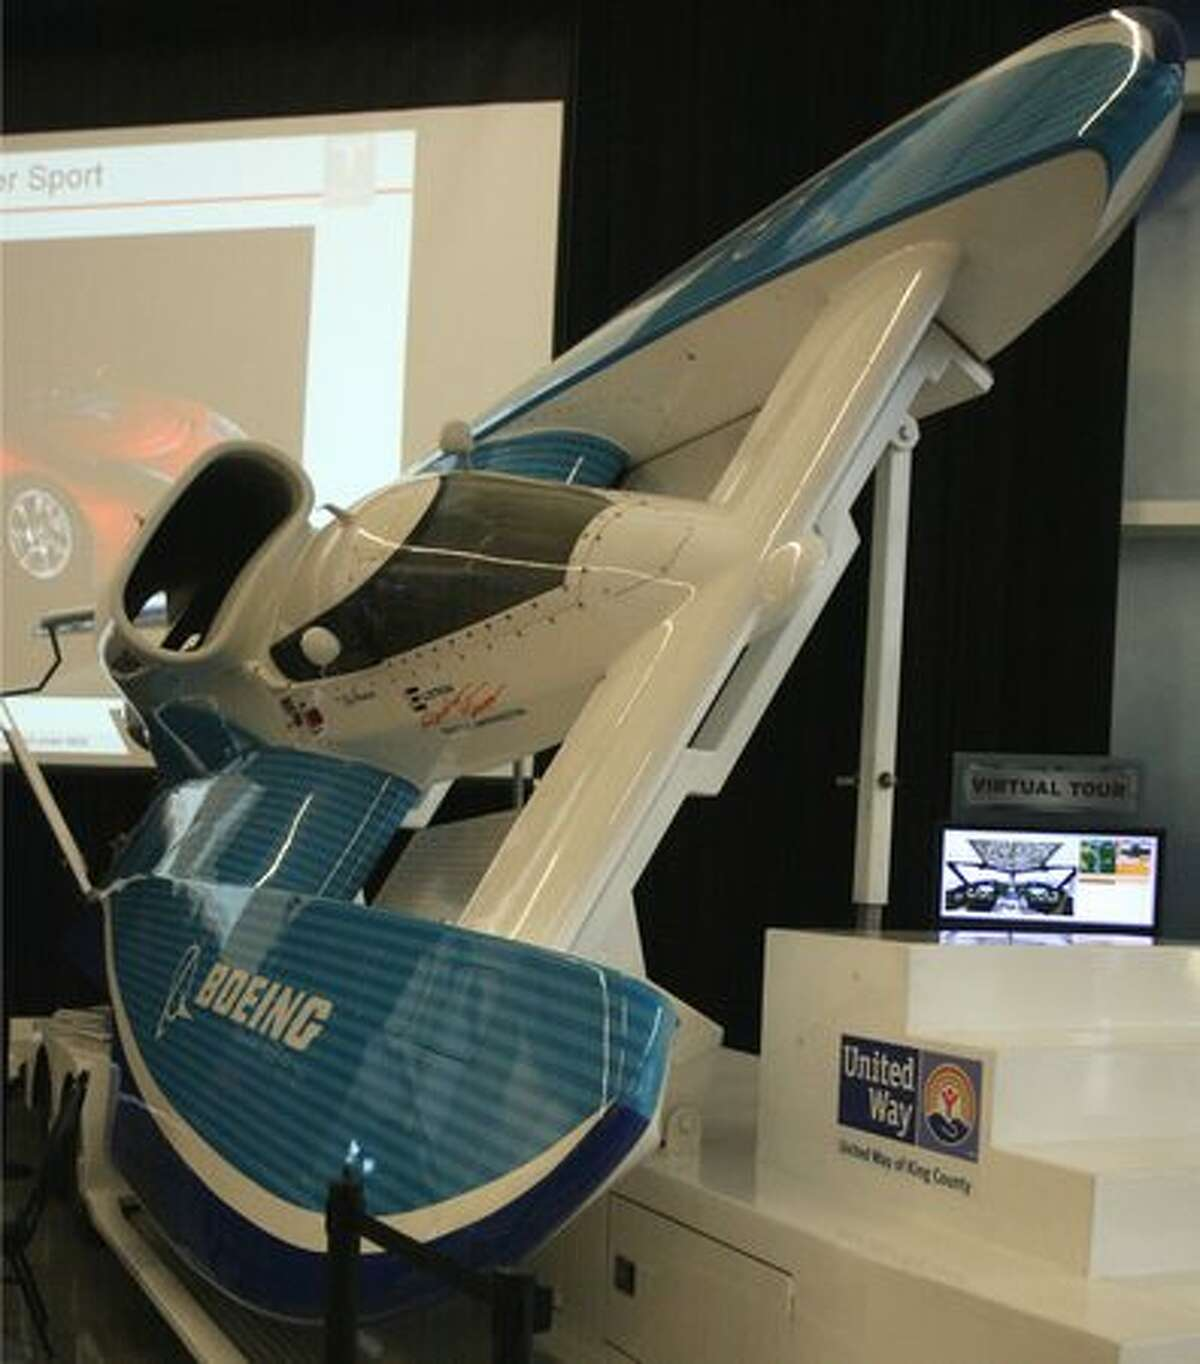 Boeing biofuel hydroplane U-787 on display inside the Future of Flight Aviation Center, in Mukilteo, on Earth Day.